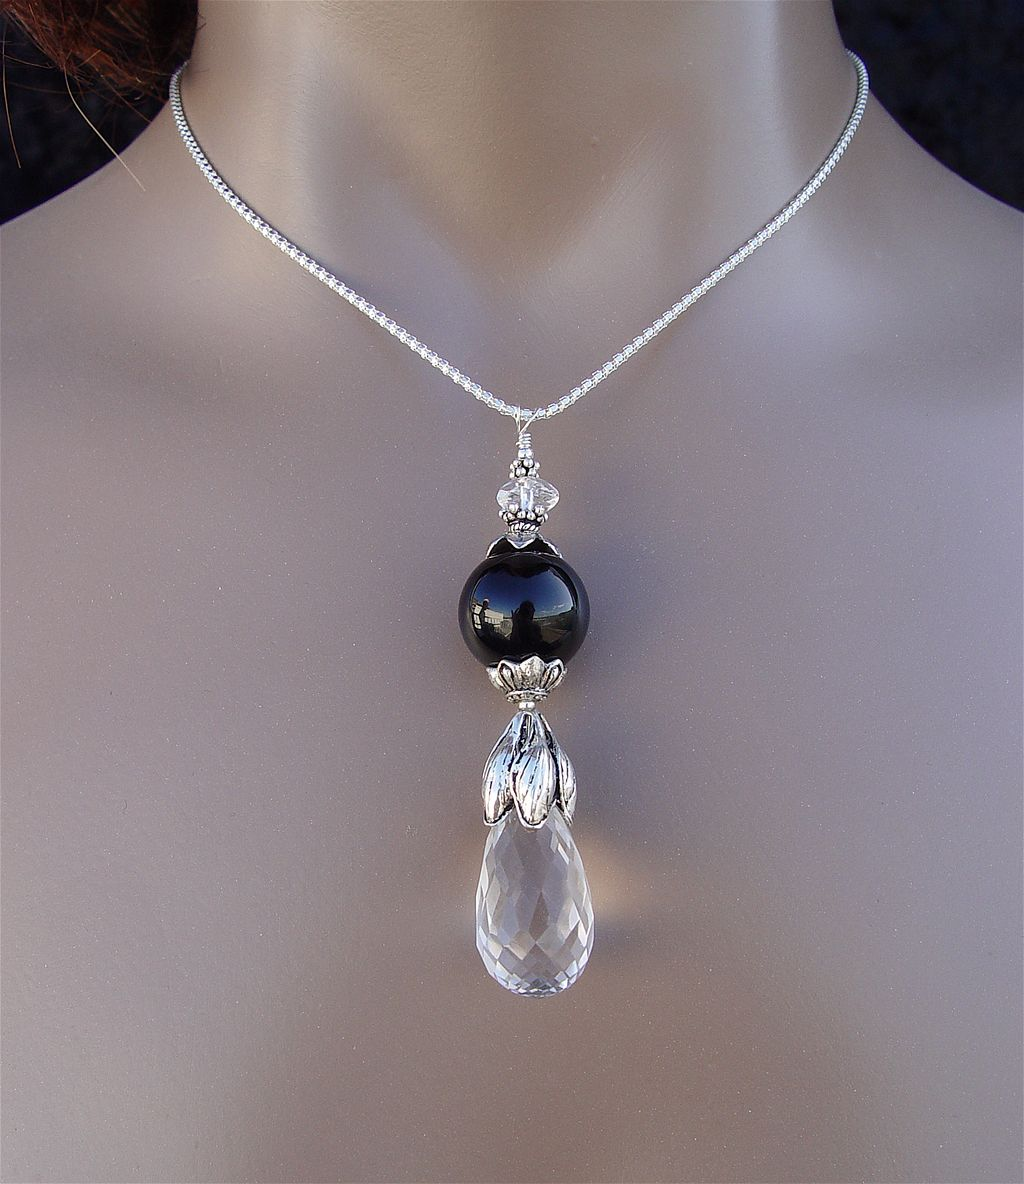 Somnia Haemalia Proserpinae - Natural Quartz, Black Onyx and Sterling Silver Necklace